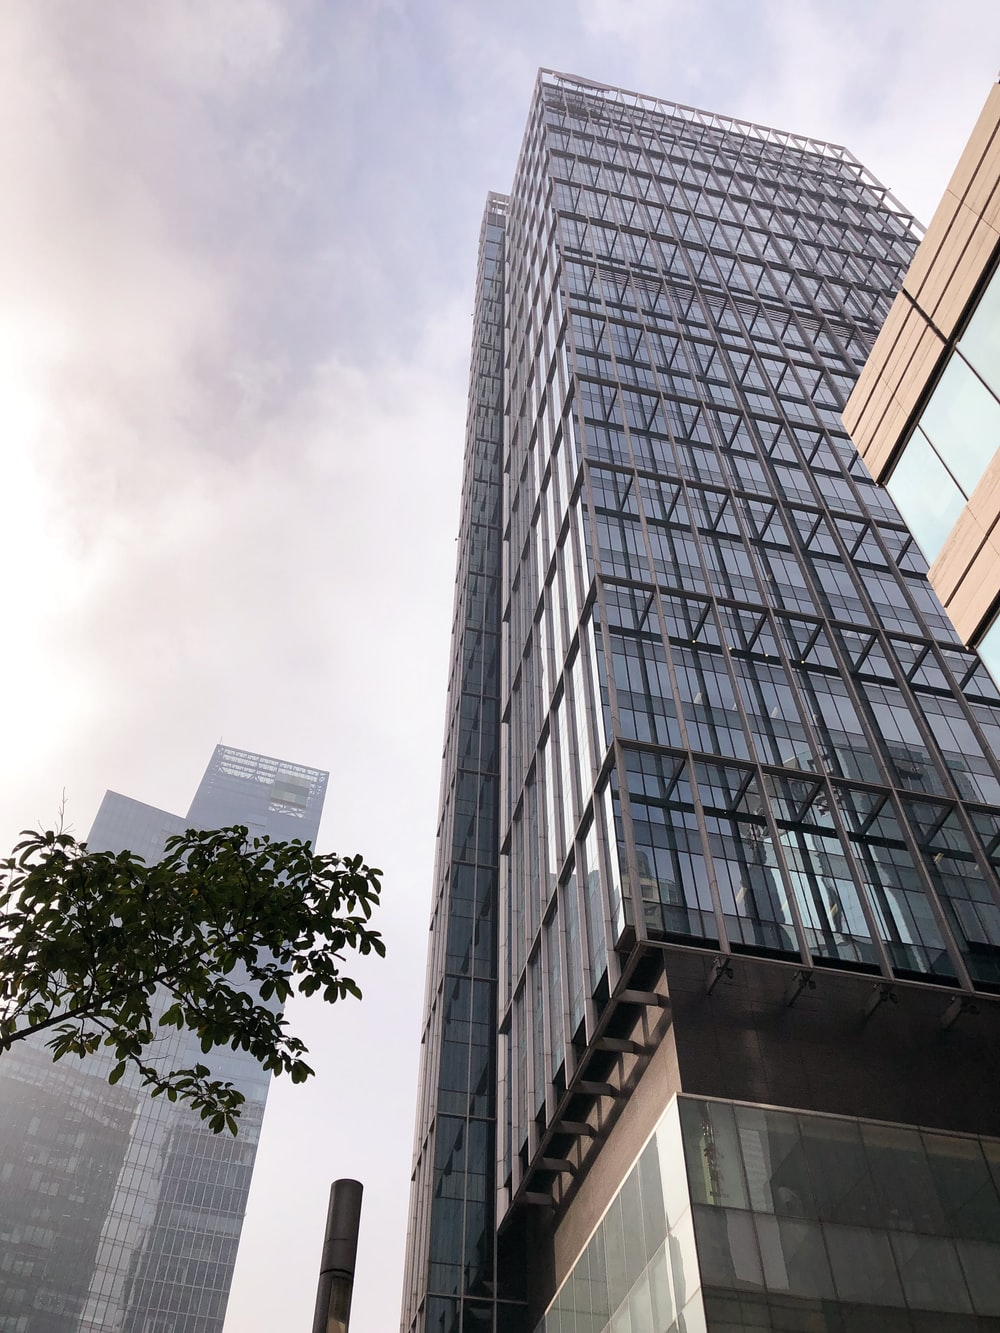 low-angle photography of gray glass high-rise building